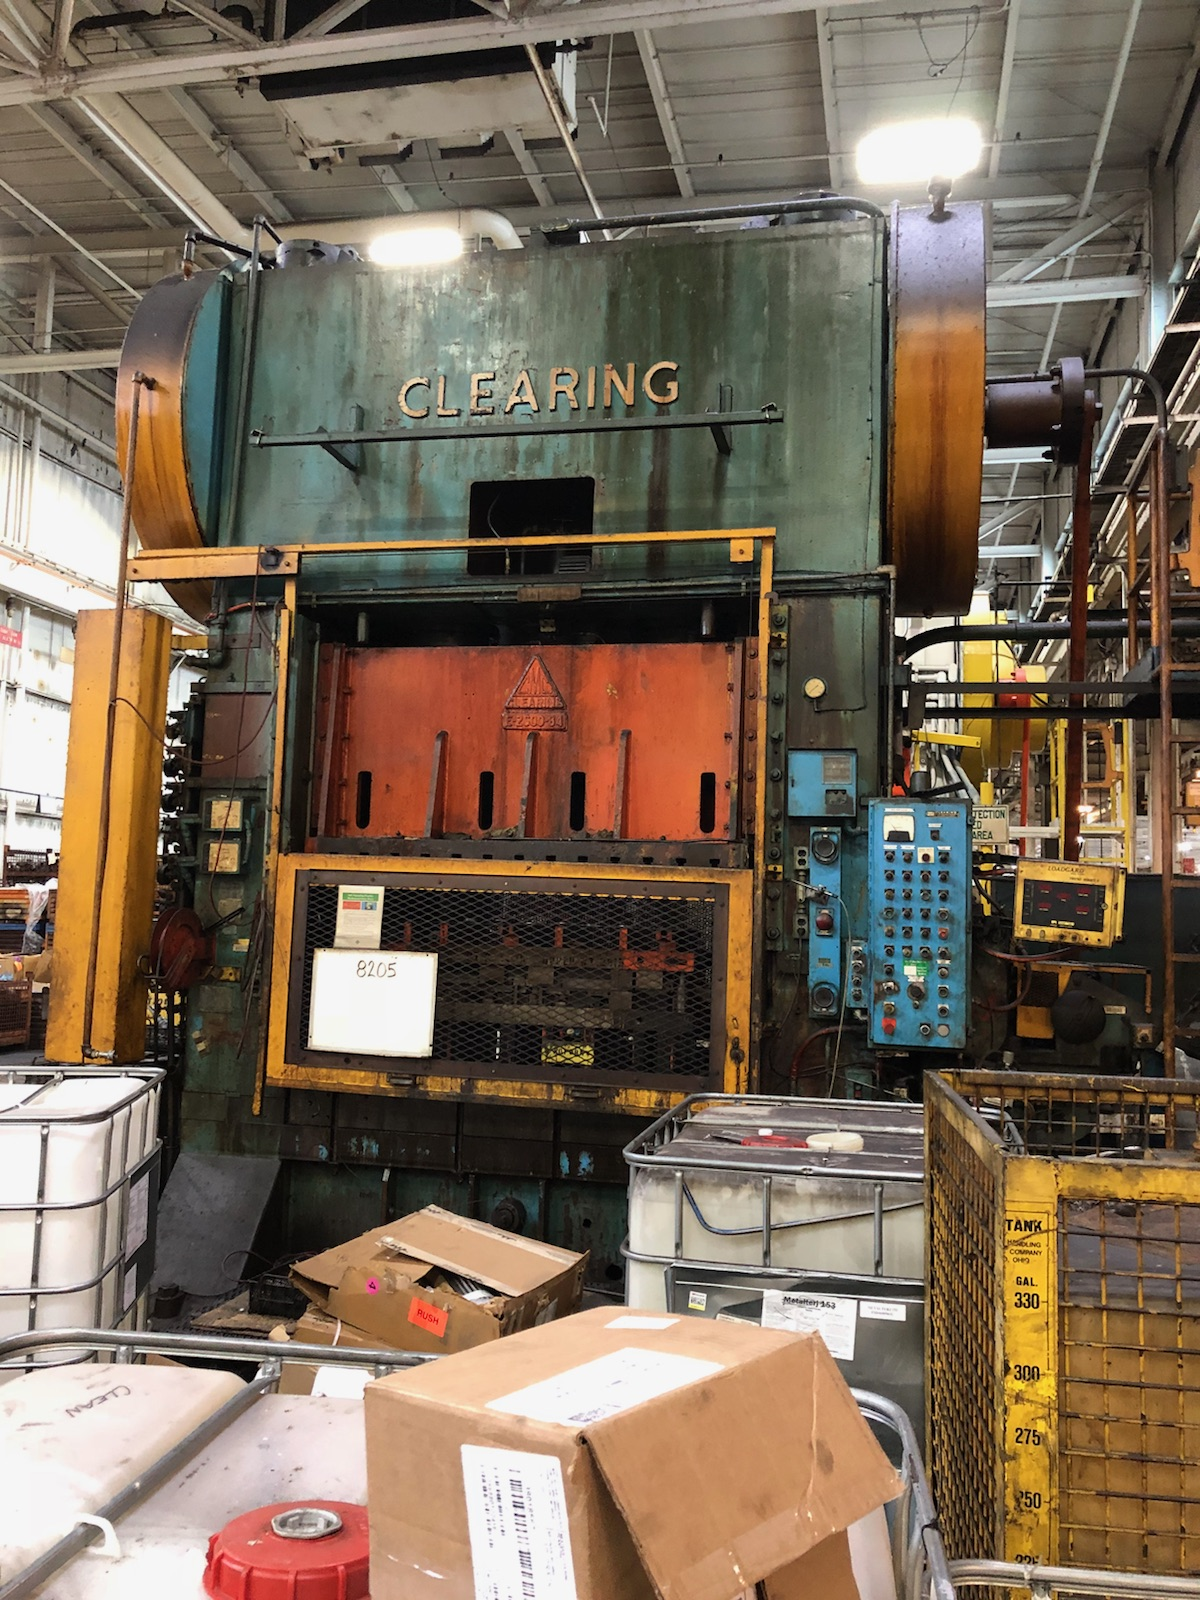 600-Ton Clearing SSDC 84 x 54 Press